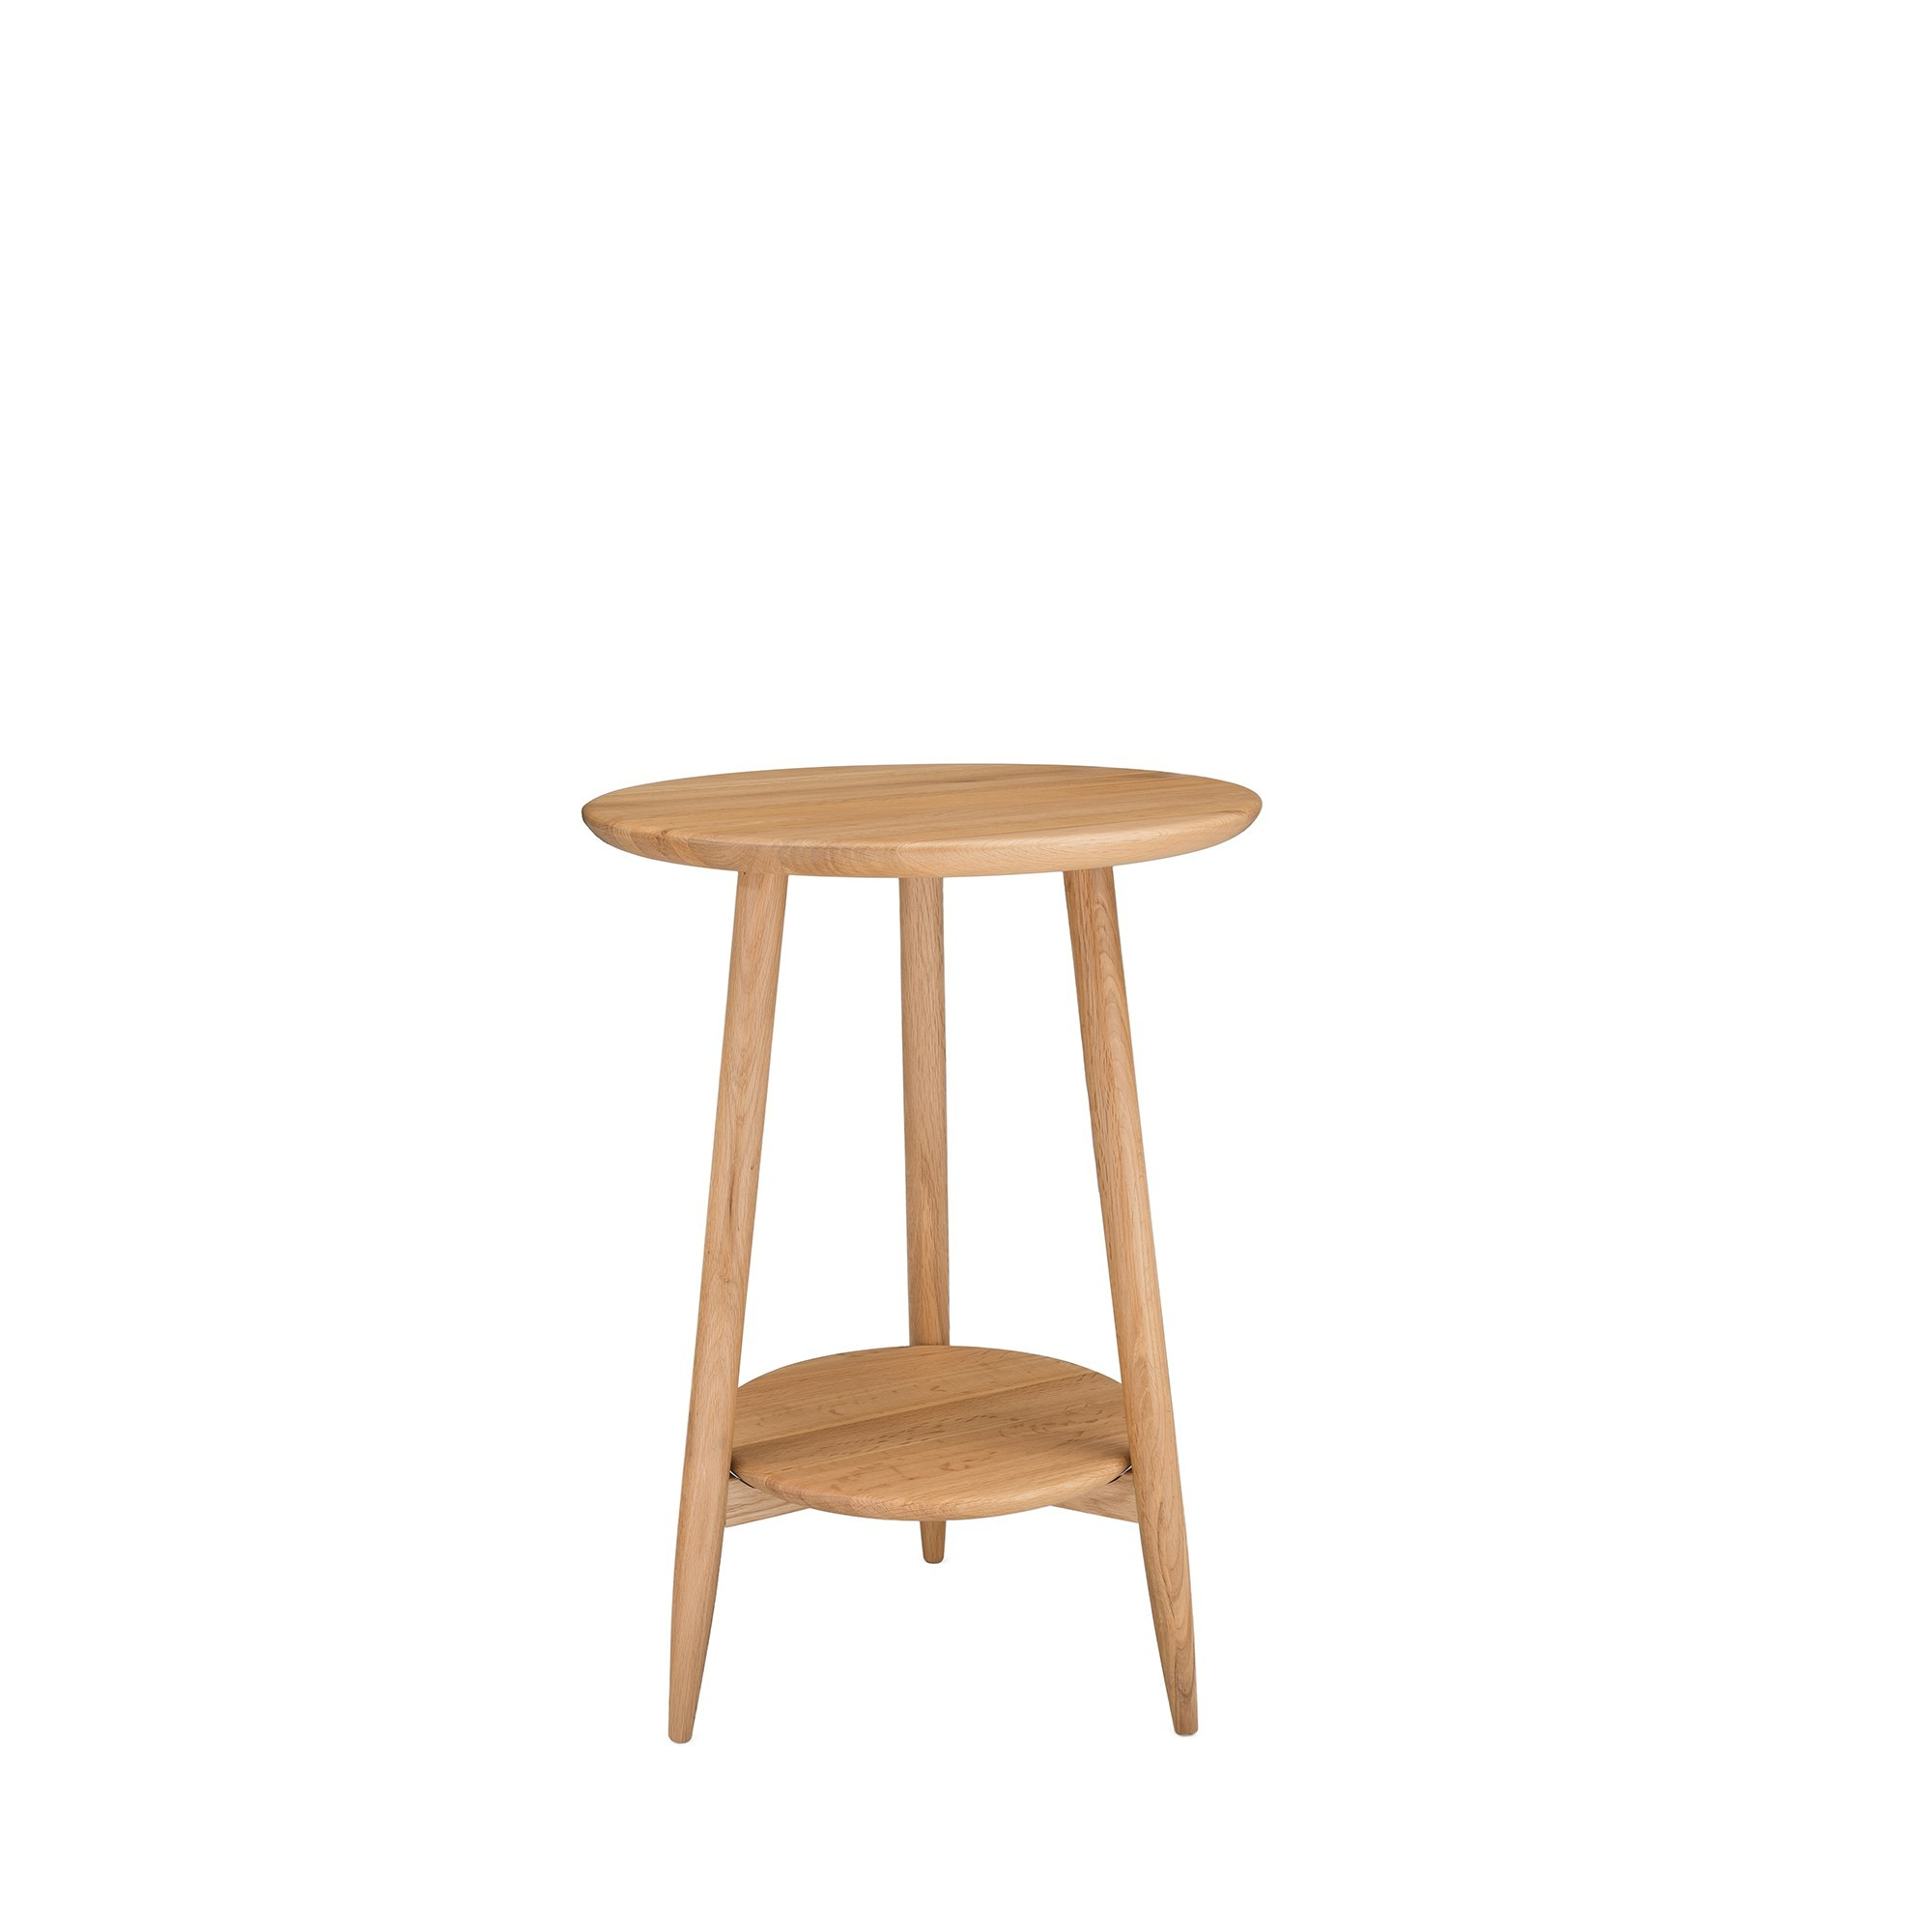 100 Ercol Dining Tables Best 25 Table Ideas On Pinterest TableErcol